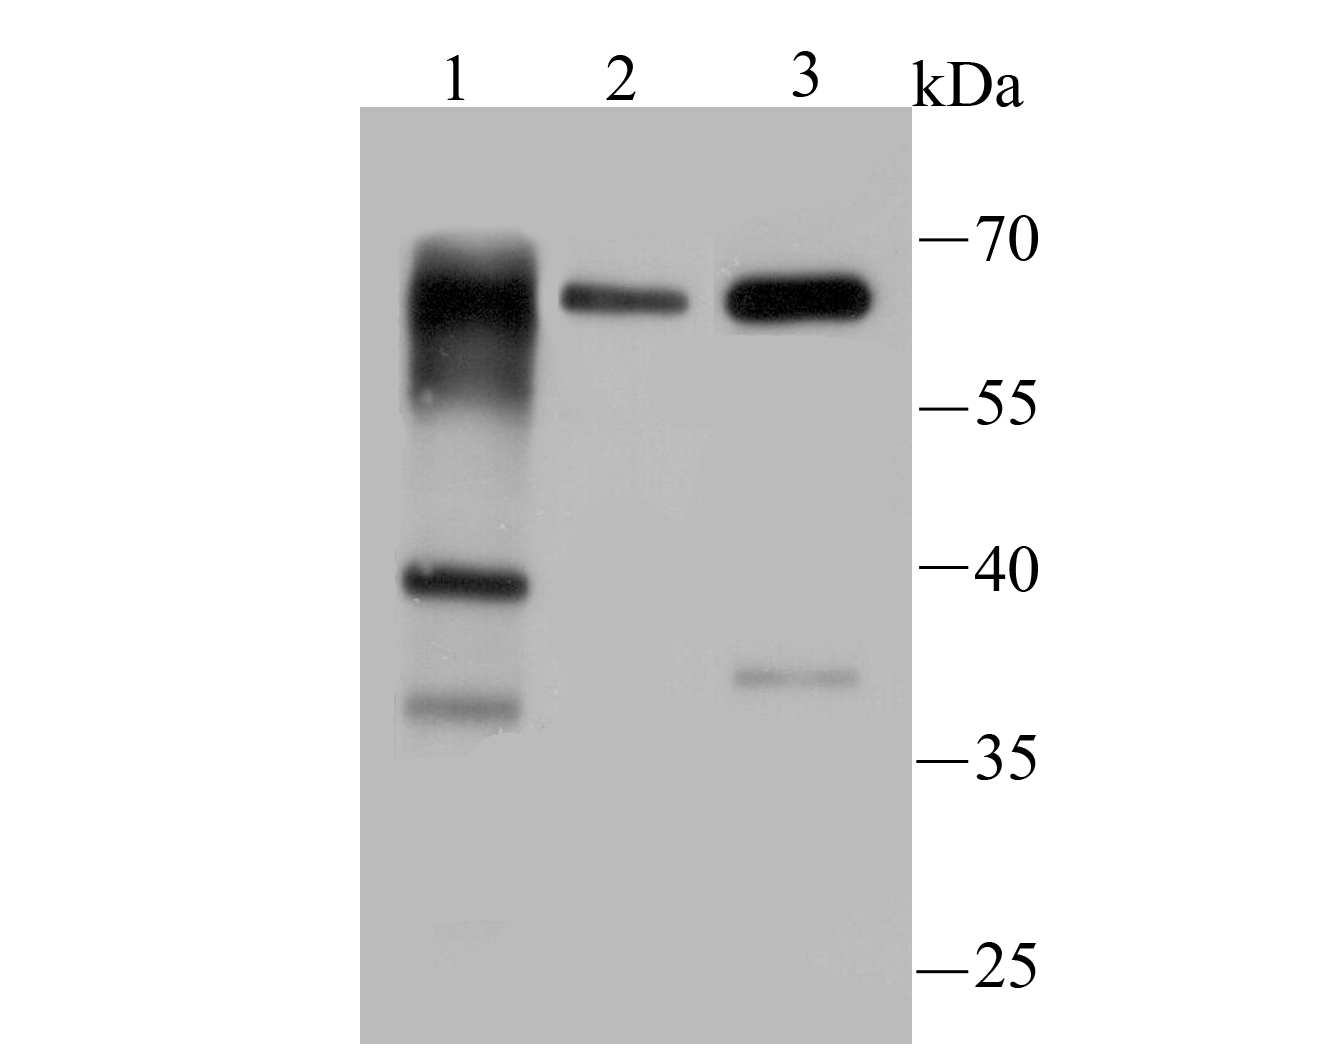 Western blot analysis of PINK1 on different lysates using anti-PINK1 antibody at 1/200 dilution.<br /> Positive control:<br /> Lane 1: A431 cell lysates<br /> Lane 2: Mouse testis tissue lysates<br /> Lane 3: Jurkat cell lysates